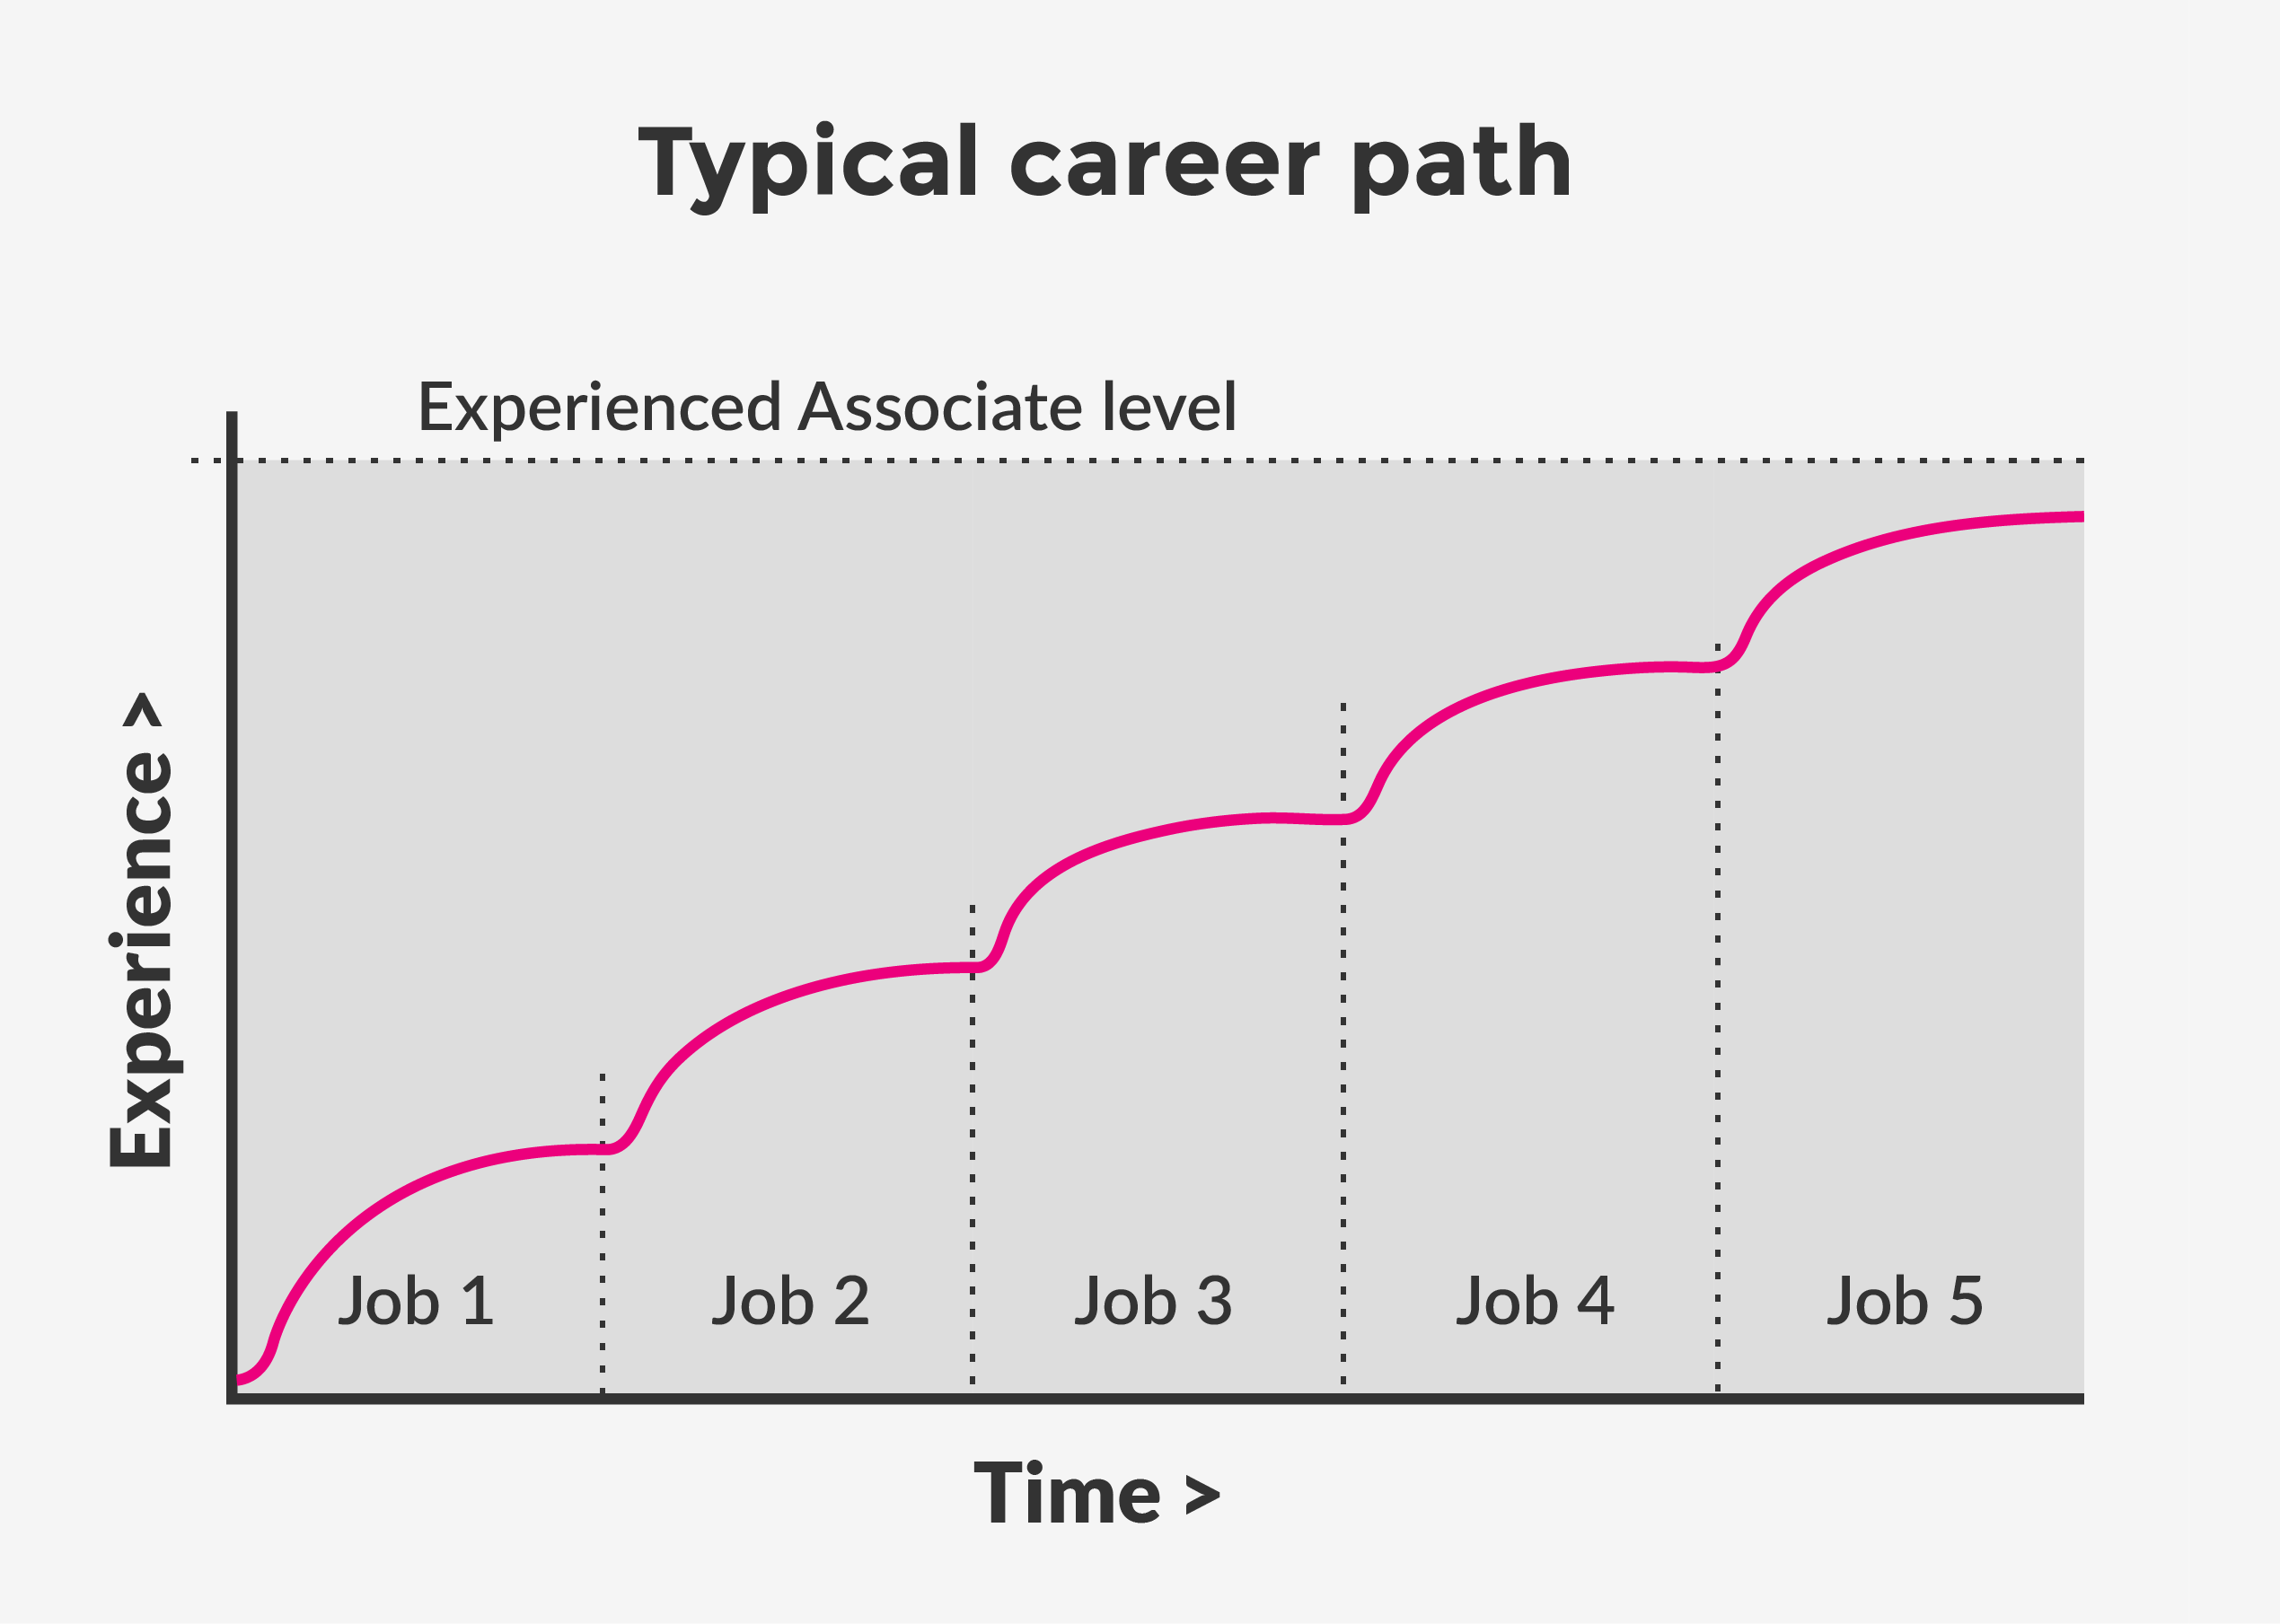 Equal Experts typical career path.